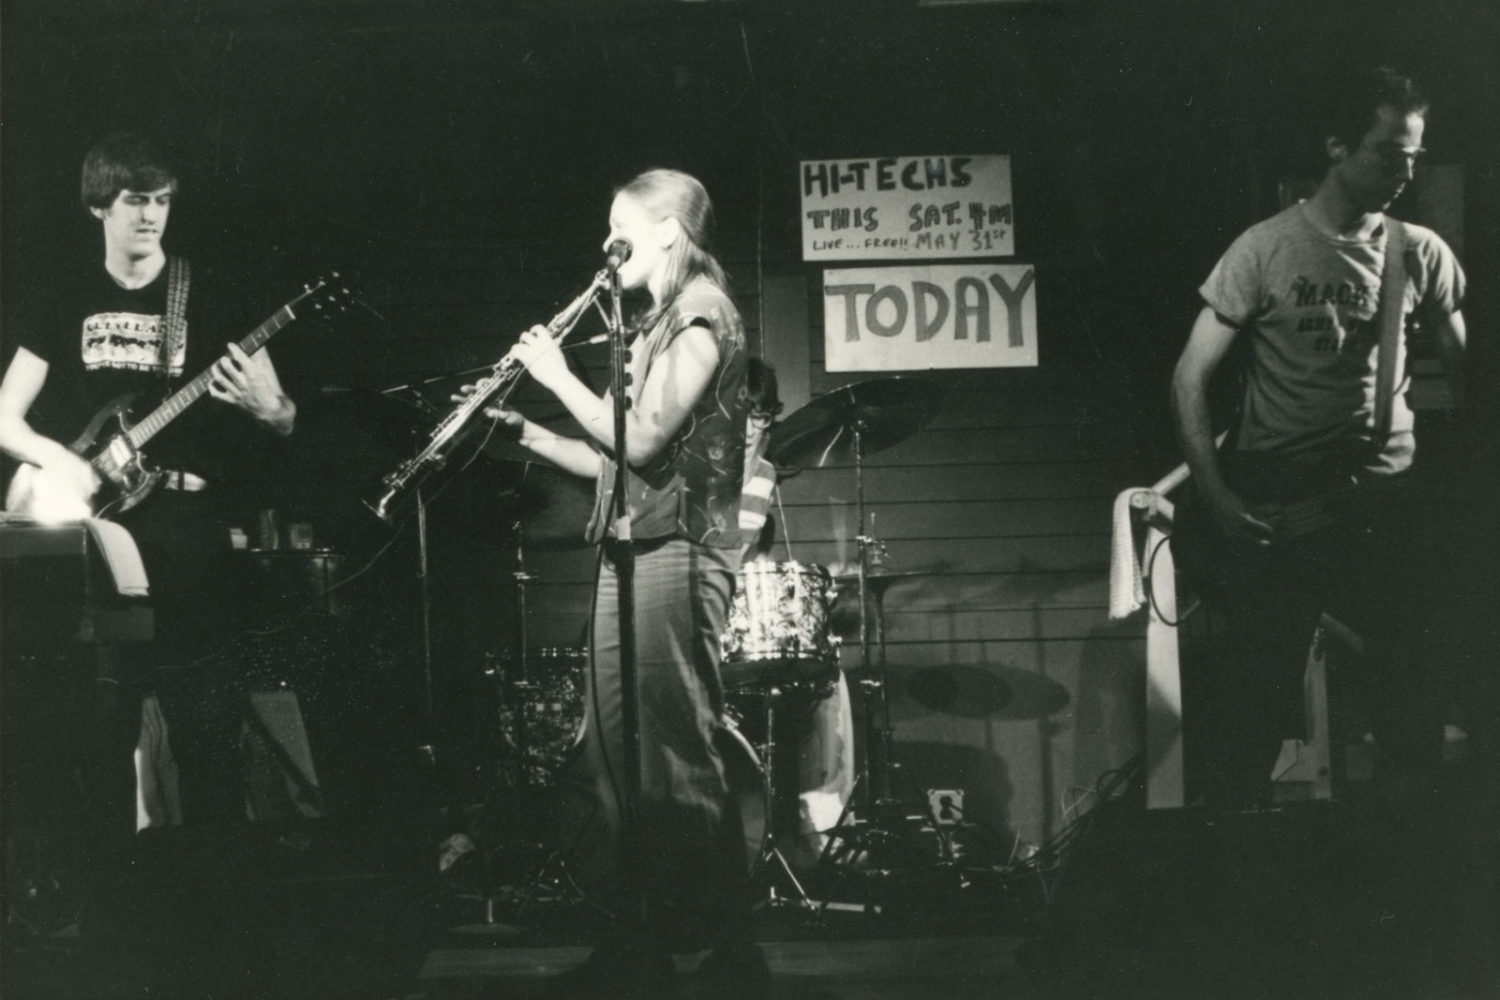 Hi-Techs performing in the back room at Record Archive on Saturday May 31 1980